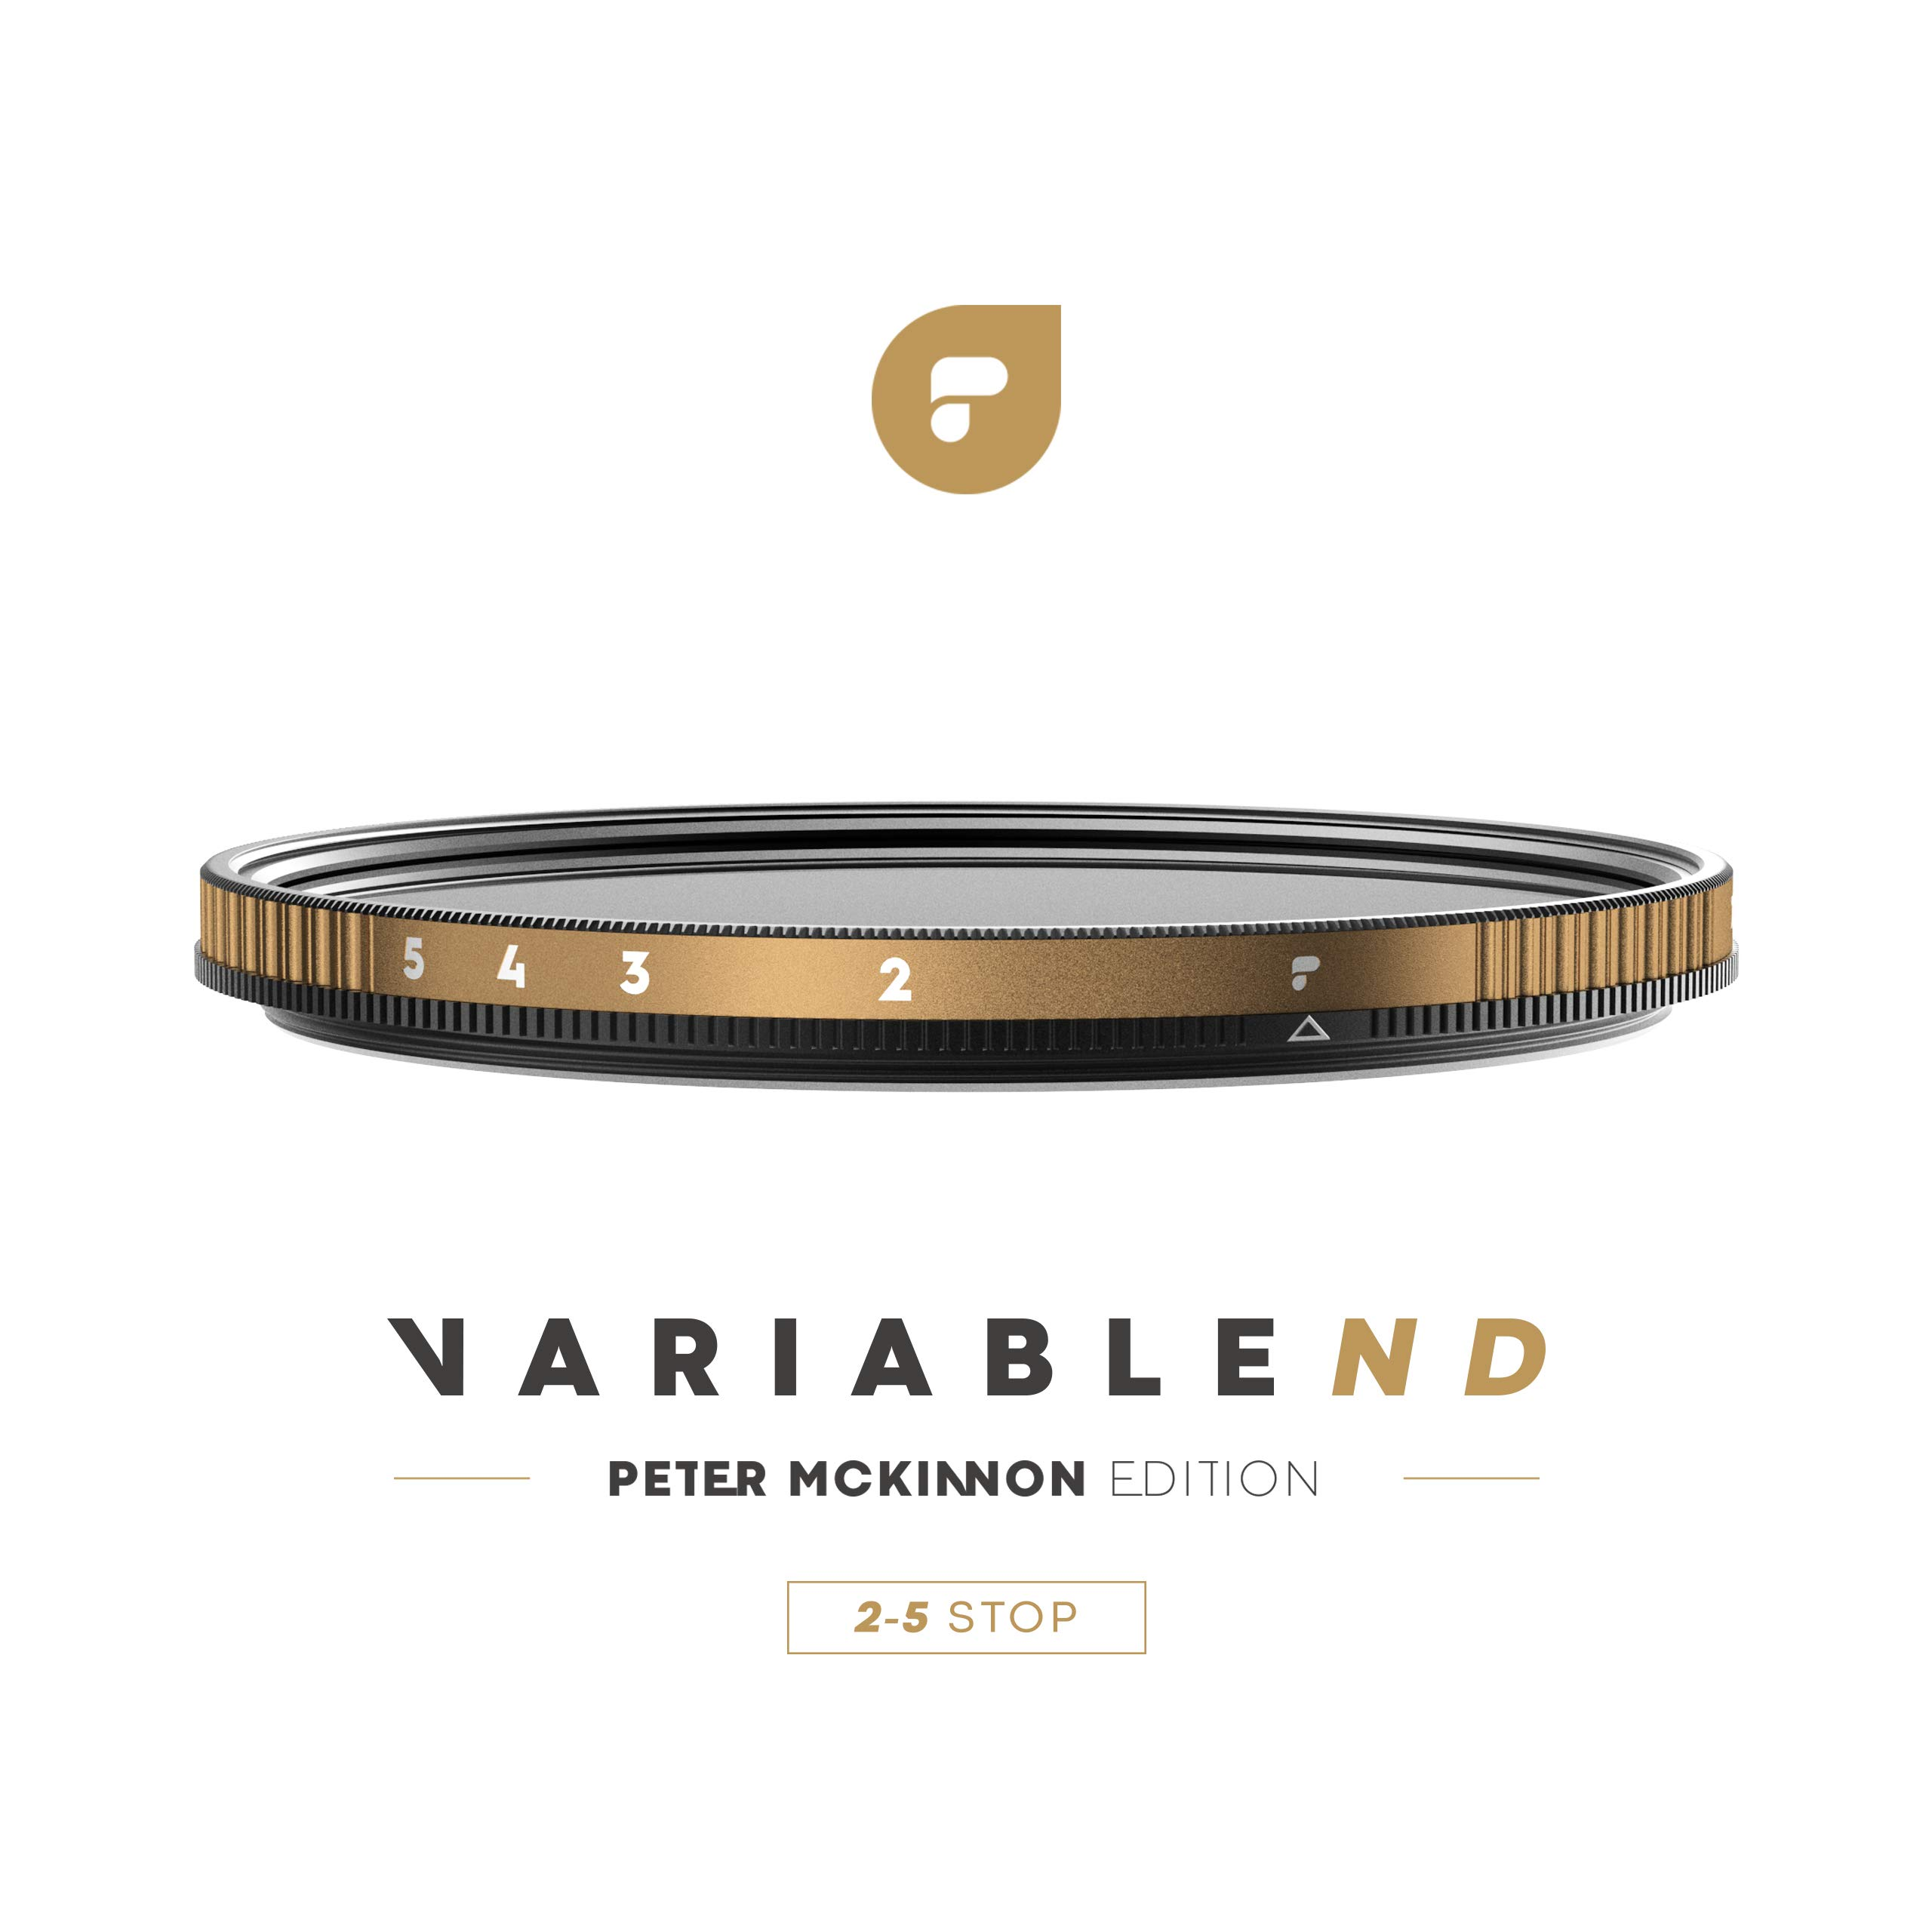 PolarPro 82mm Variable ND Filter (2 to 5 Stop) - Peter McKinnon Edition by PolarPro